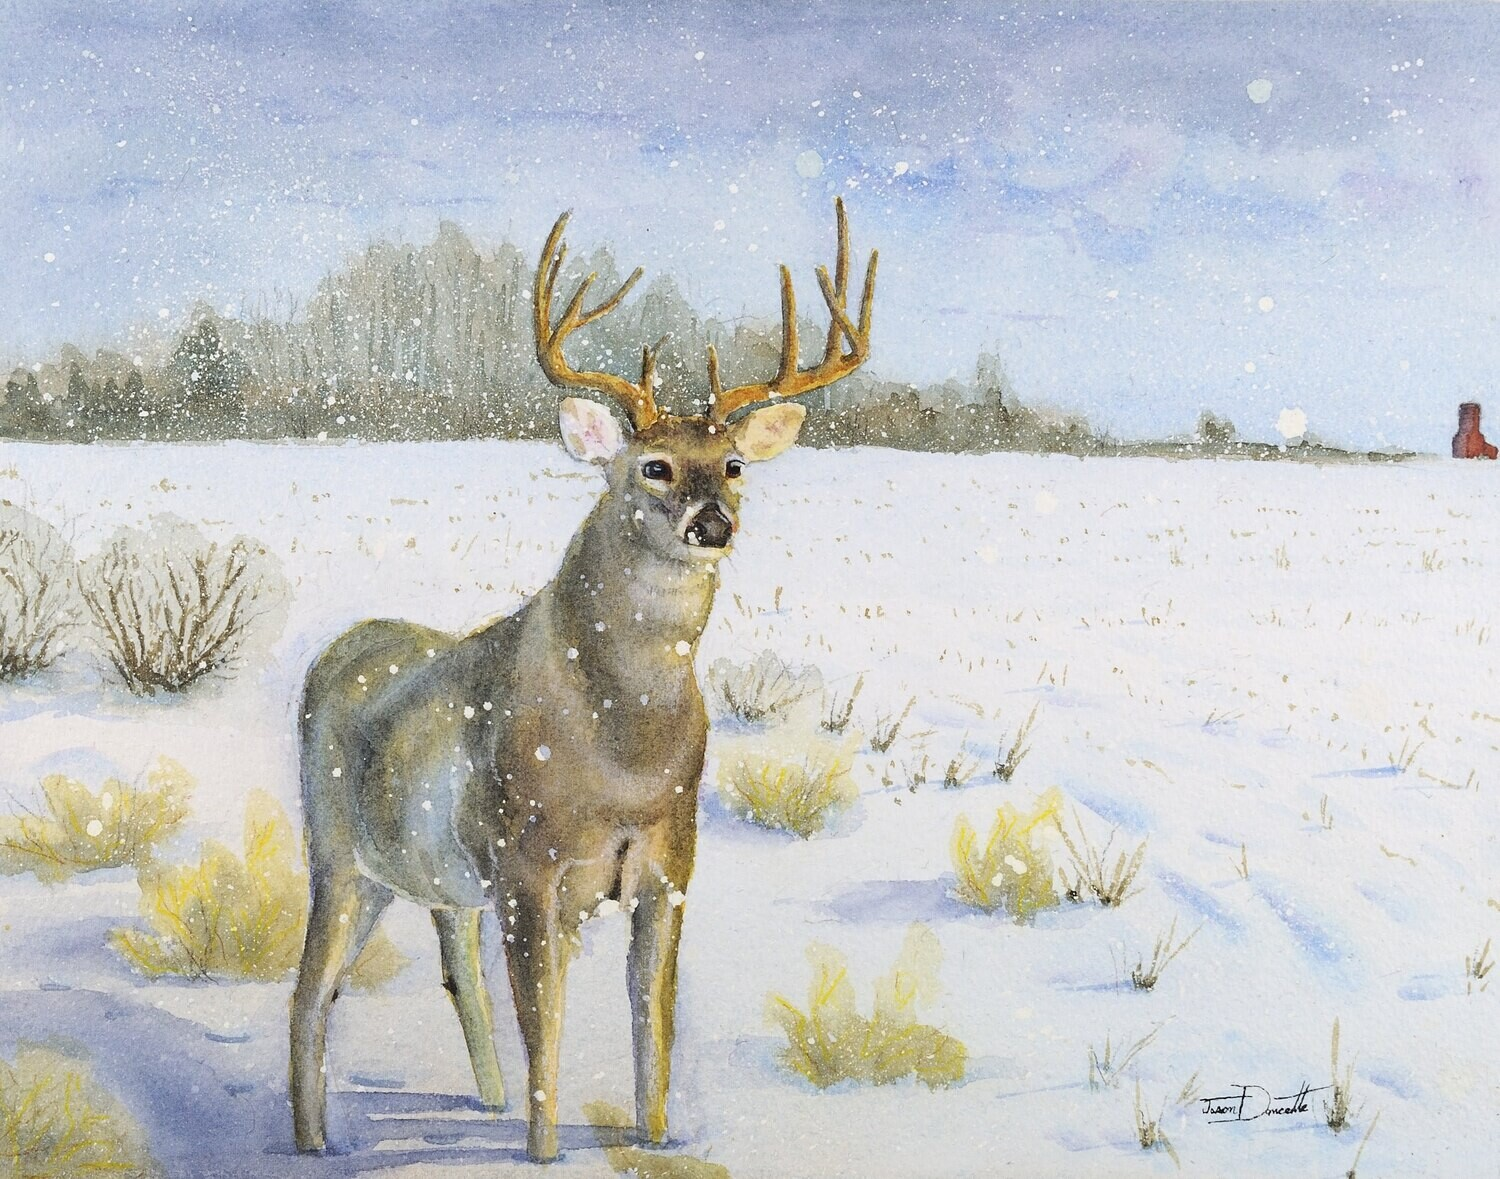 Unseen Visitor, Whitetail Deer